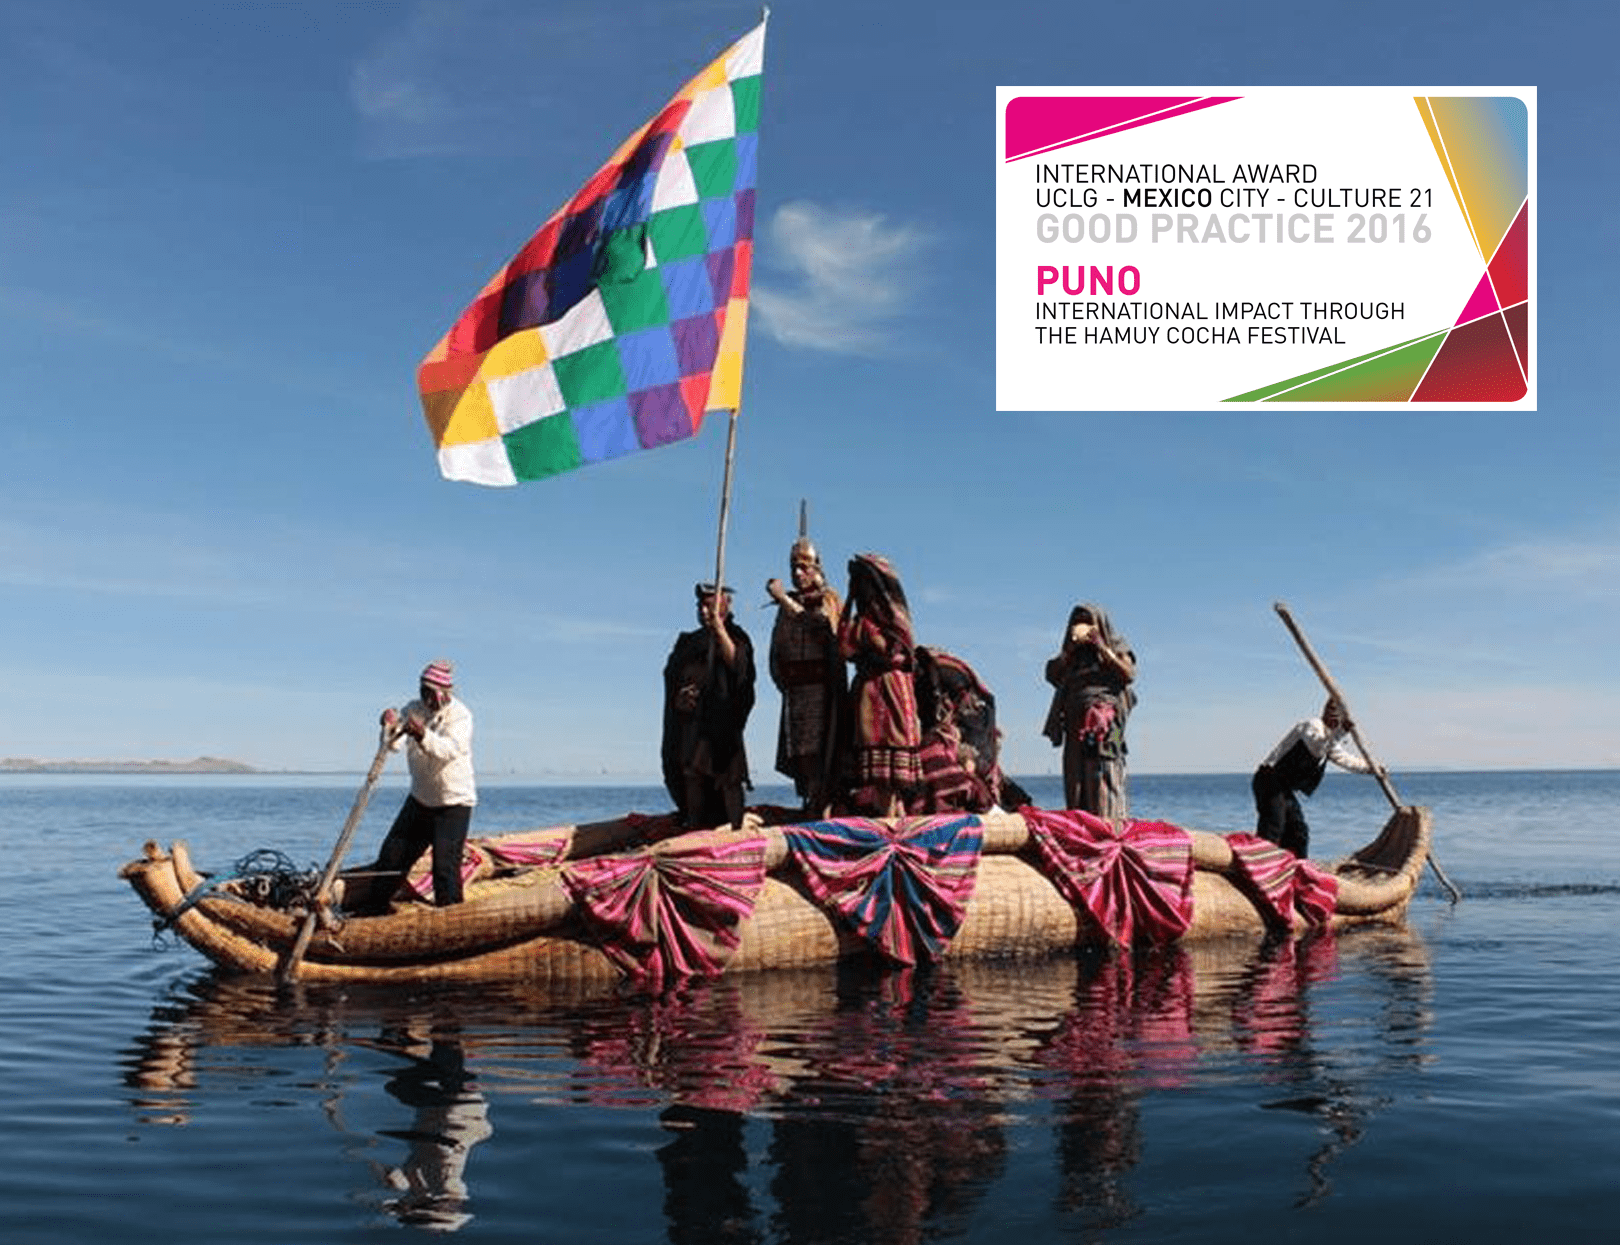 International impact through the Hamuy Cocha Festival, Puno